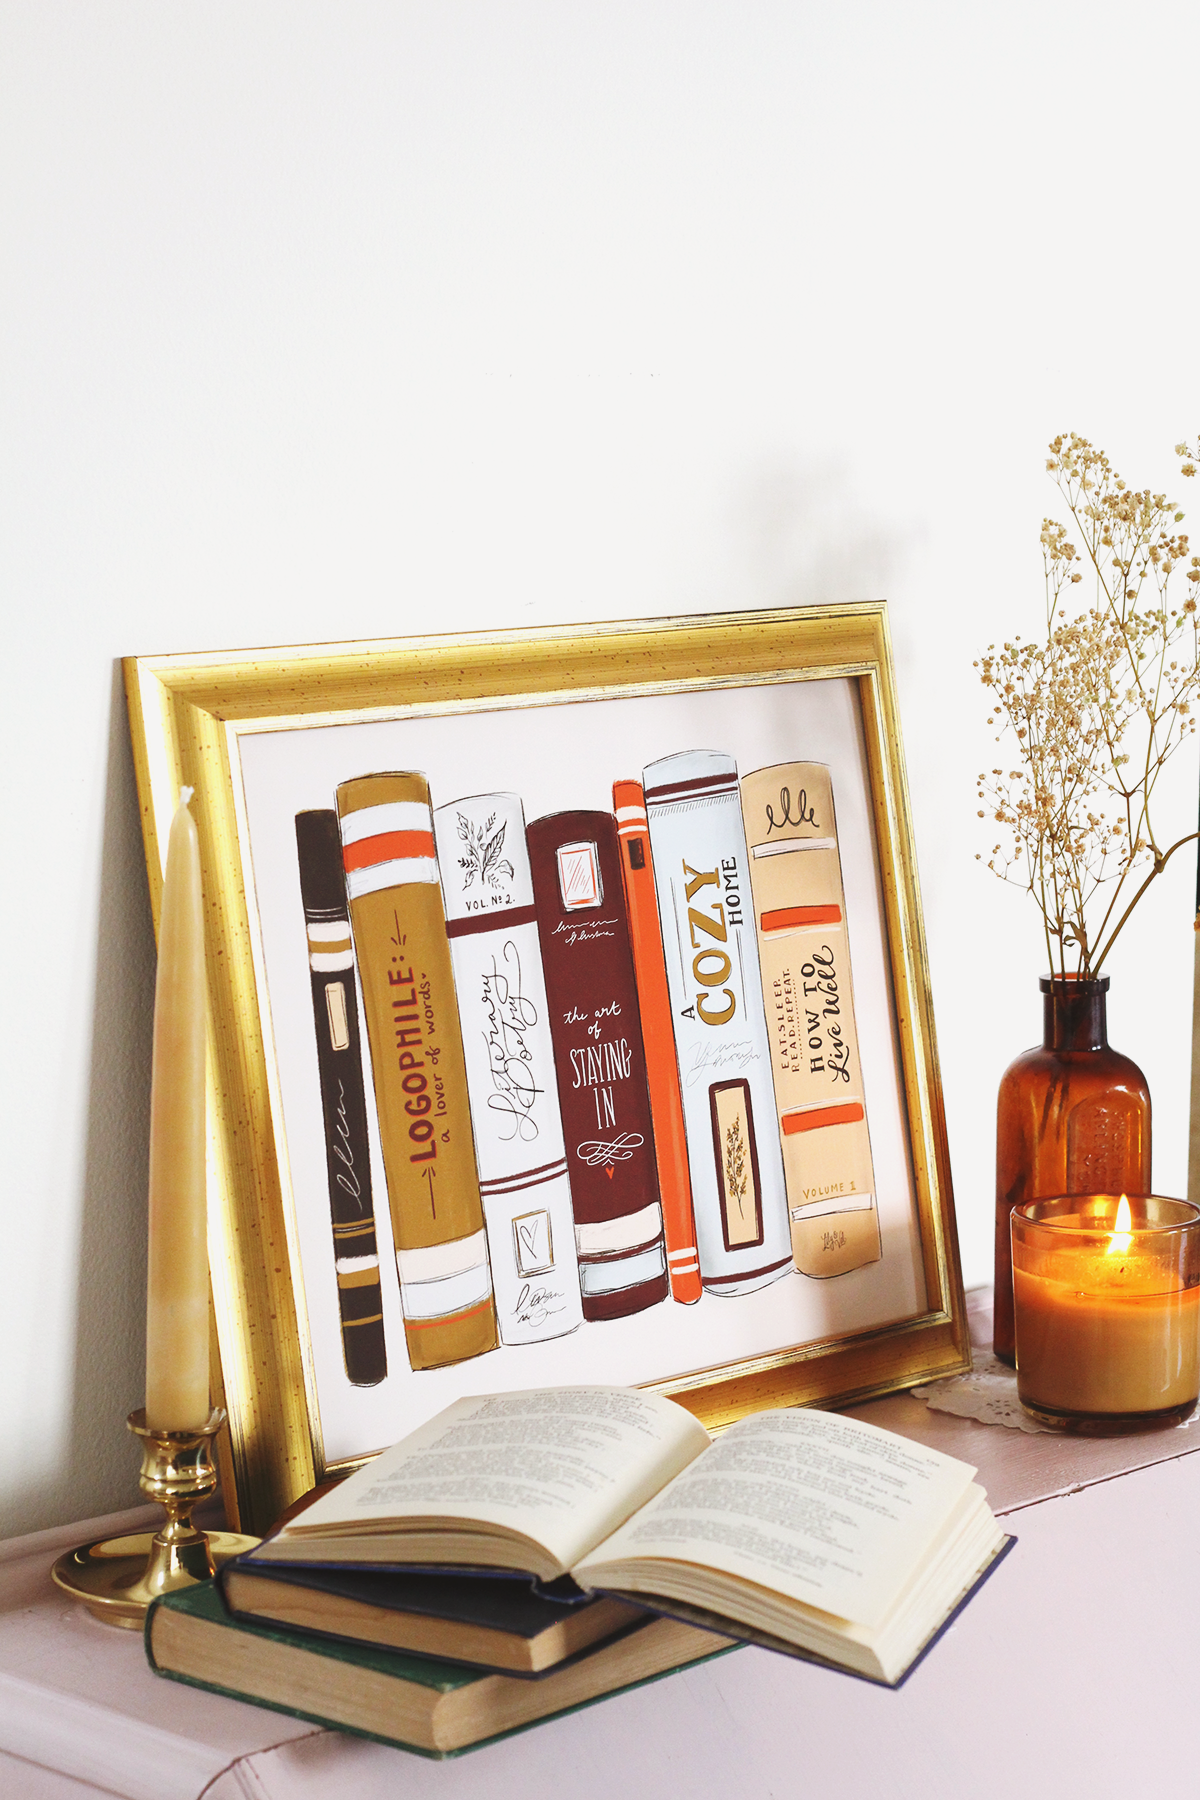 Fall Art for the Book Lover - Book Spine Illustration